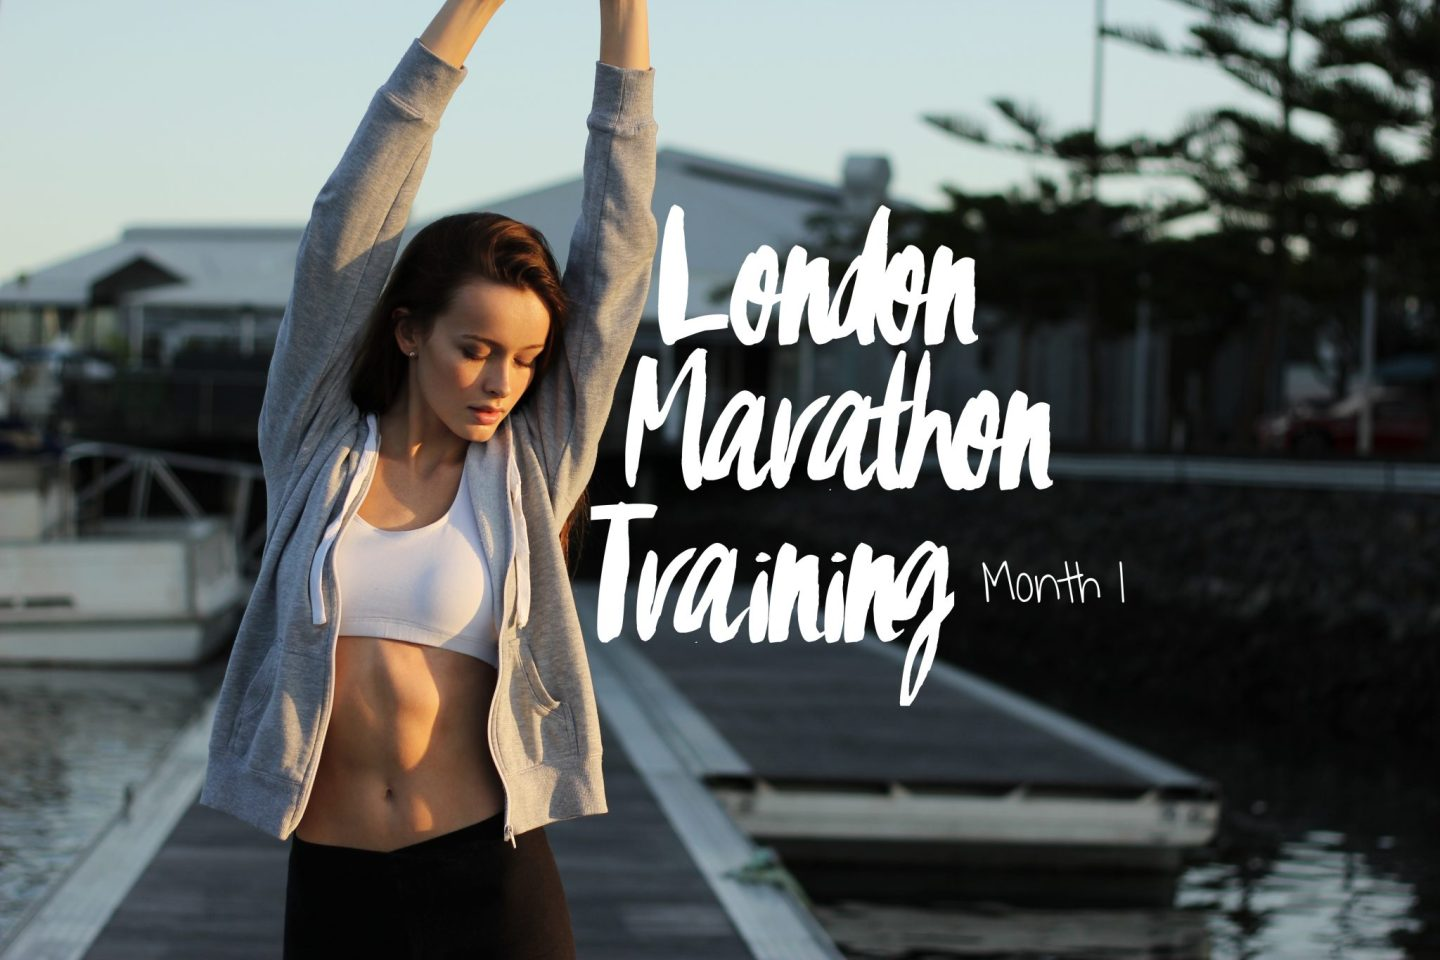 London Marathon Training Month 1